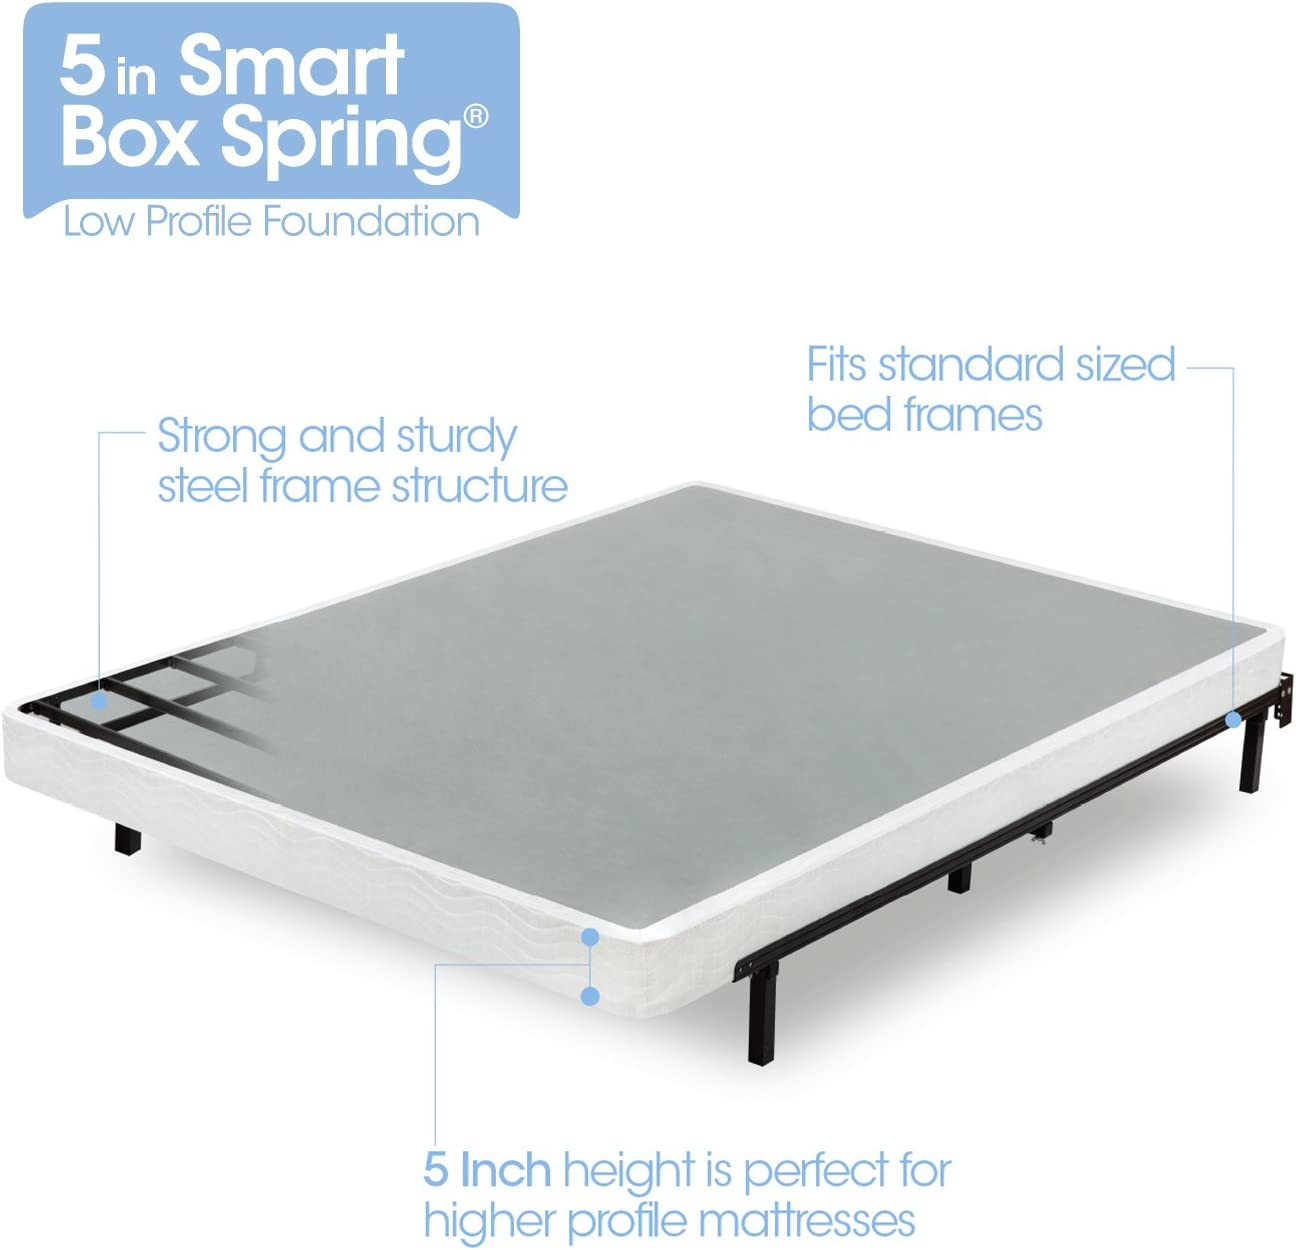 Zinus Armita 5 Inch Smart Box Spring / Mattress Foundation / Built-to-Last Metal Structure / Low Profile / Easy Assembly, Queen: Furniture & Decor